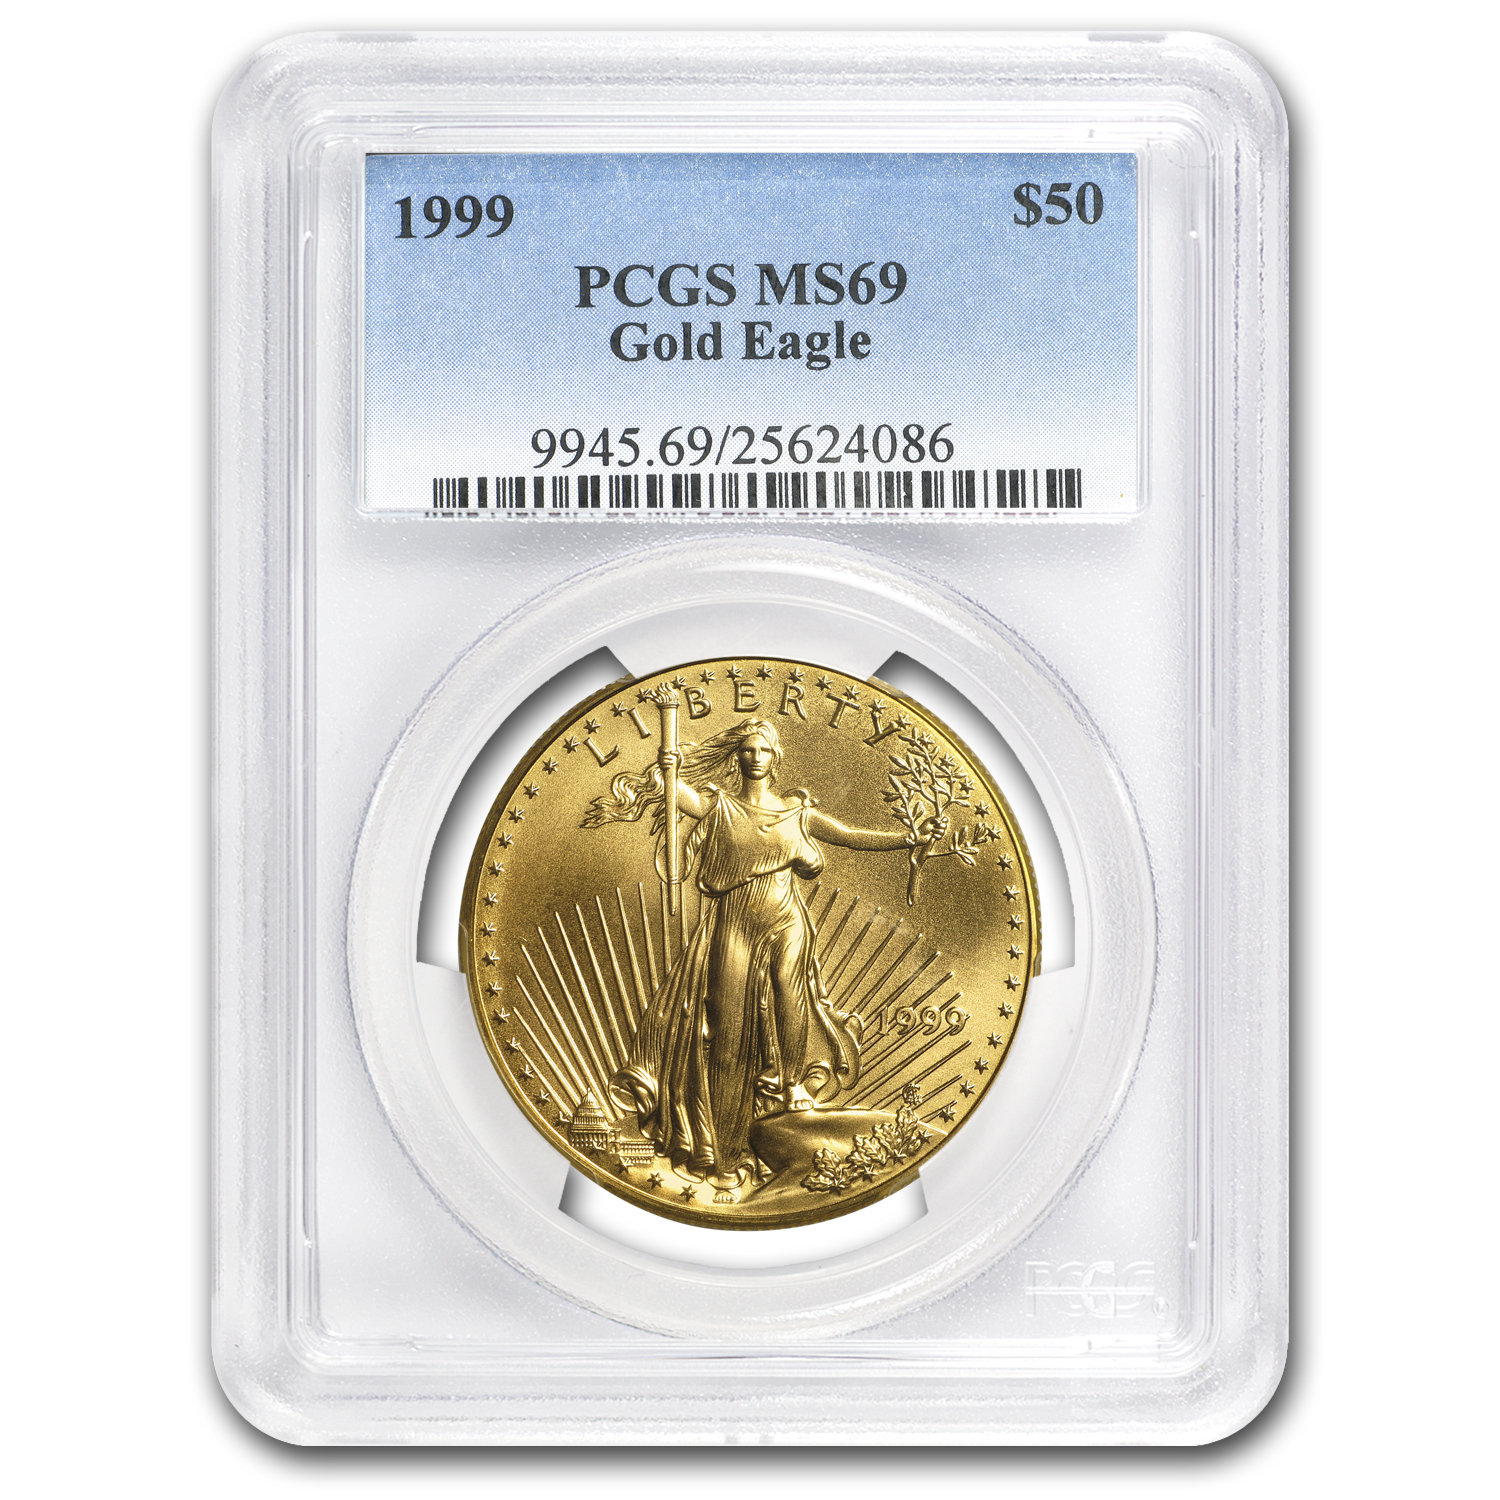 1999 1 oz Gold American Eagle MS-69 PCGS